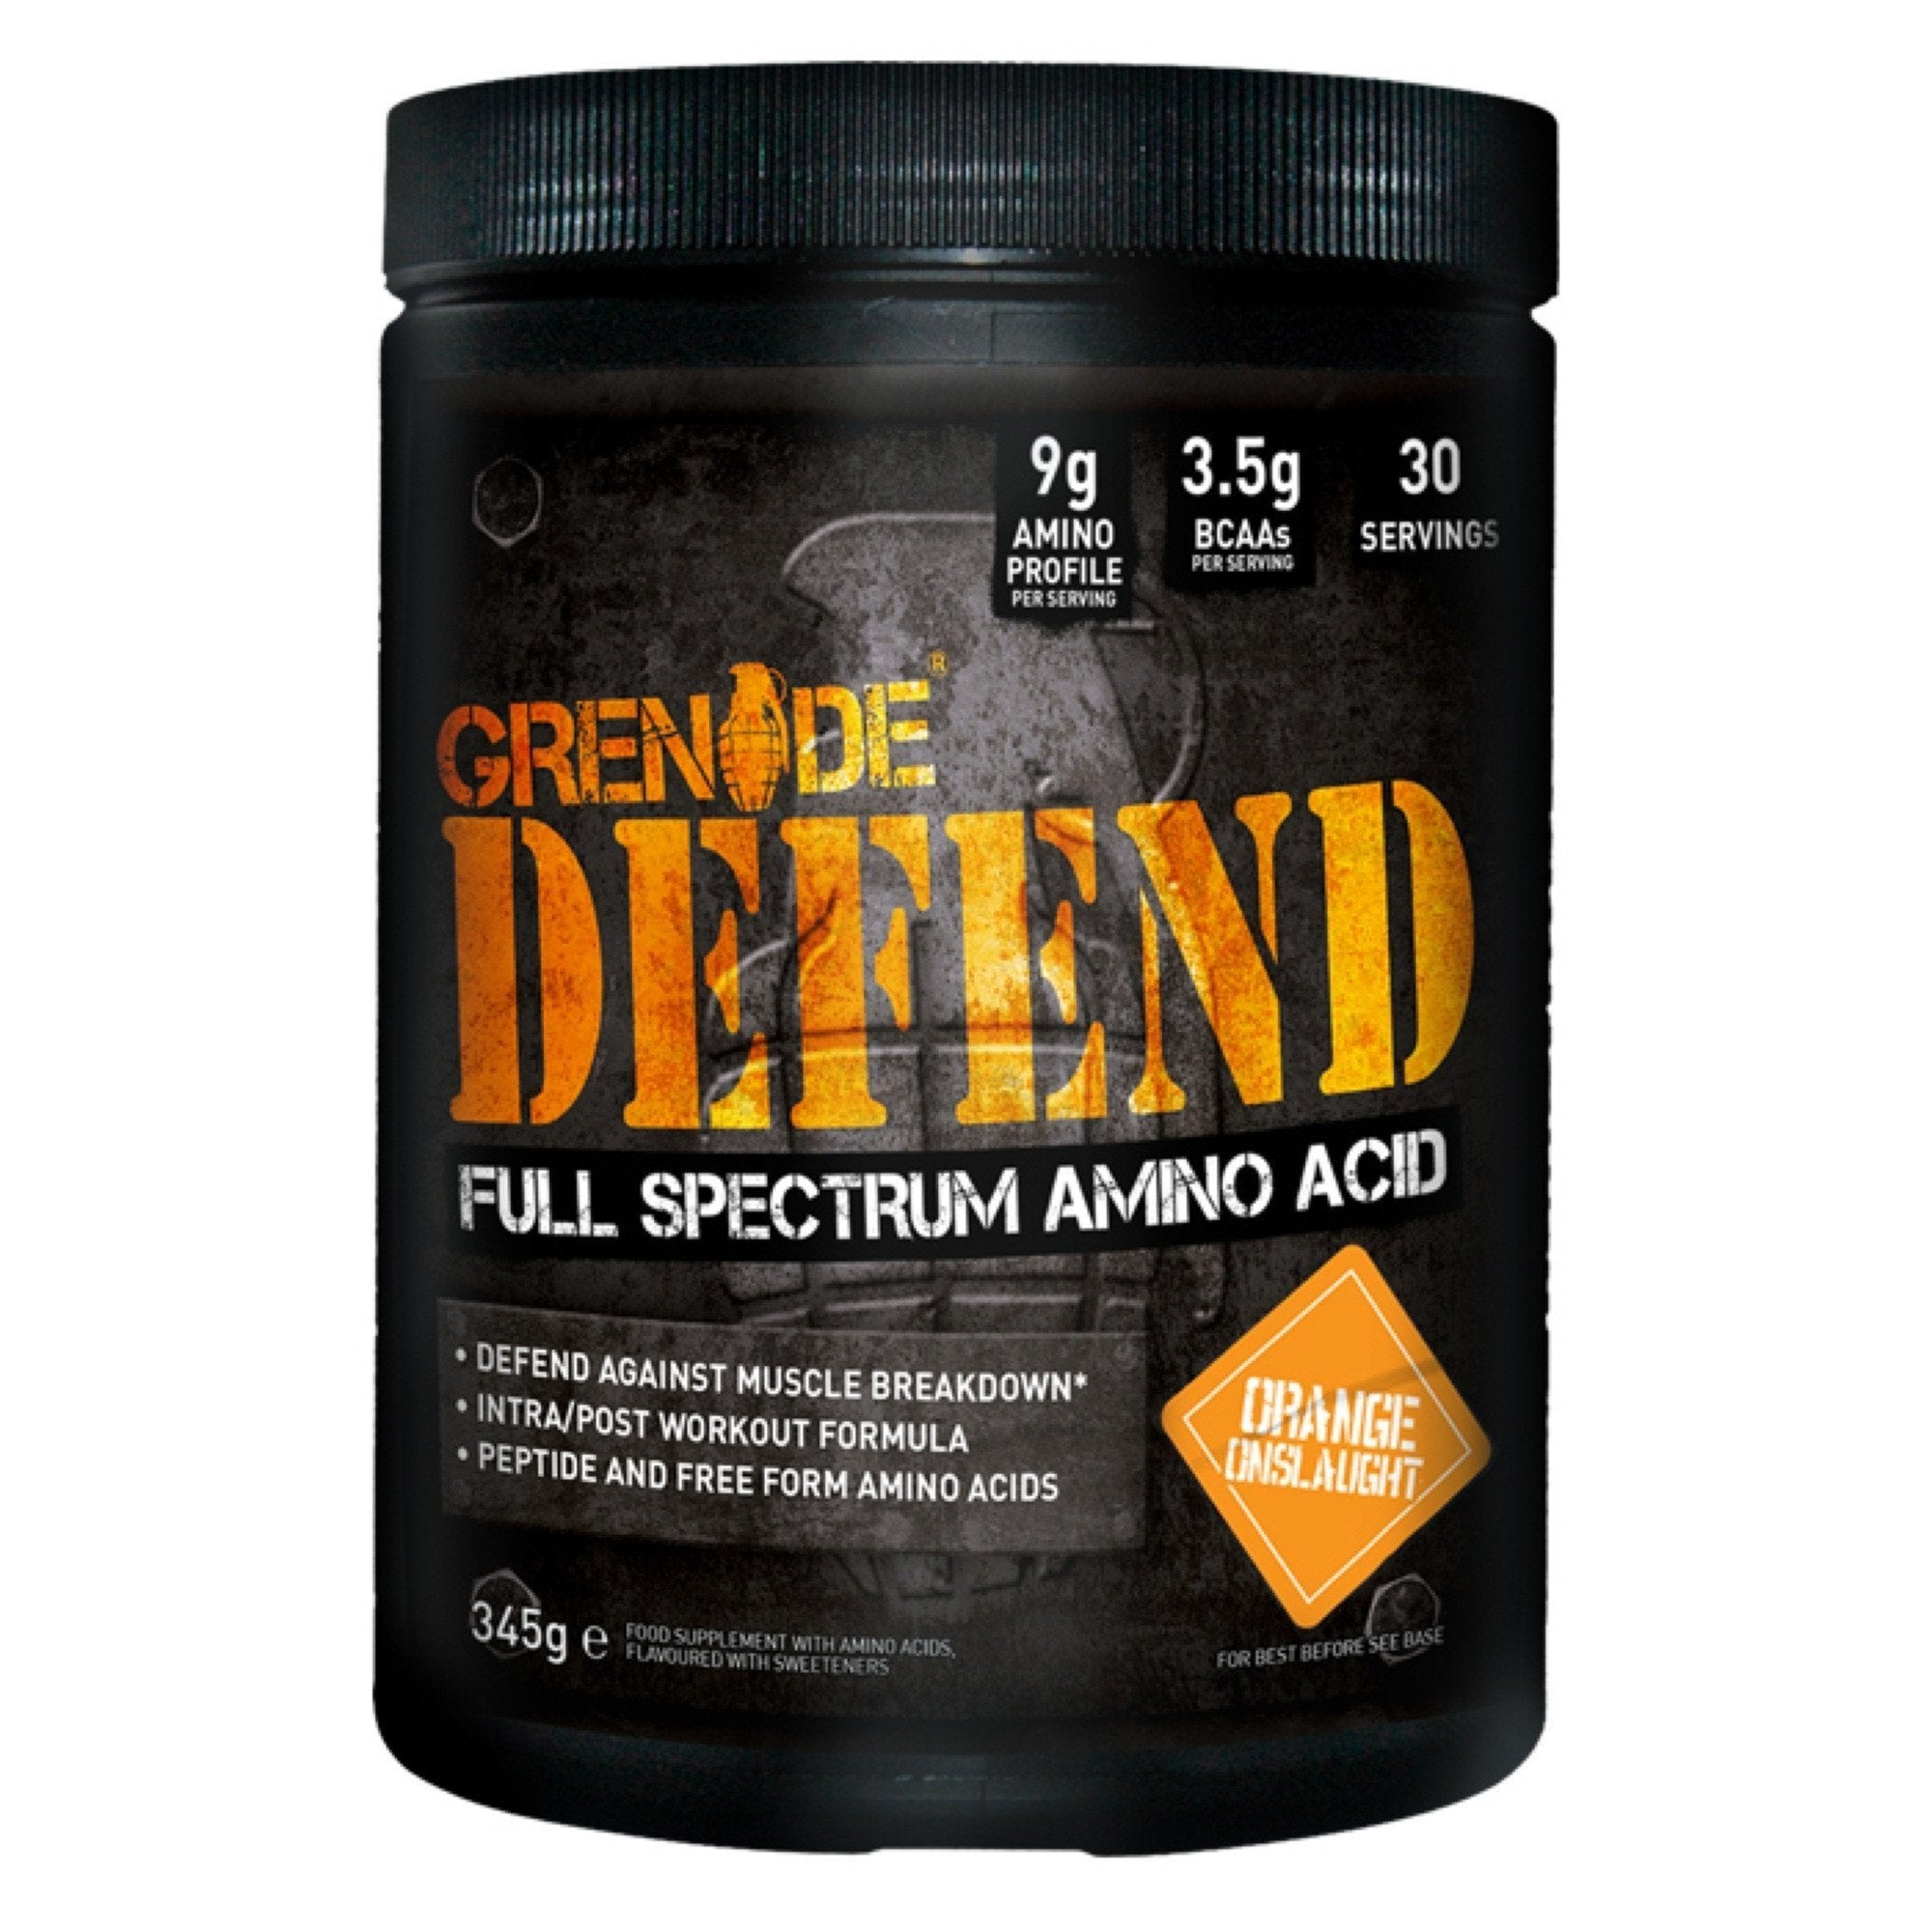 Grenade Grenade Defend 345g / Atomic Apple Amino Acids The Good Life